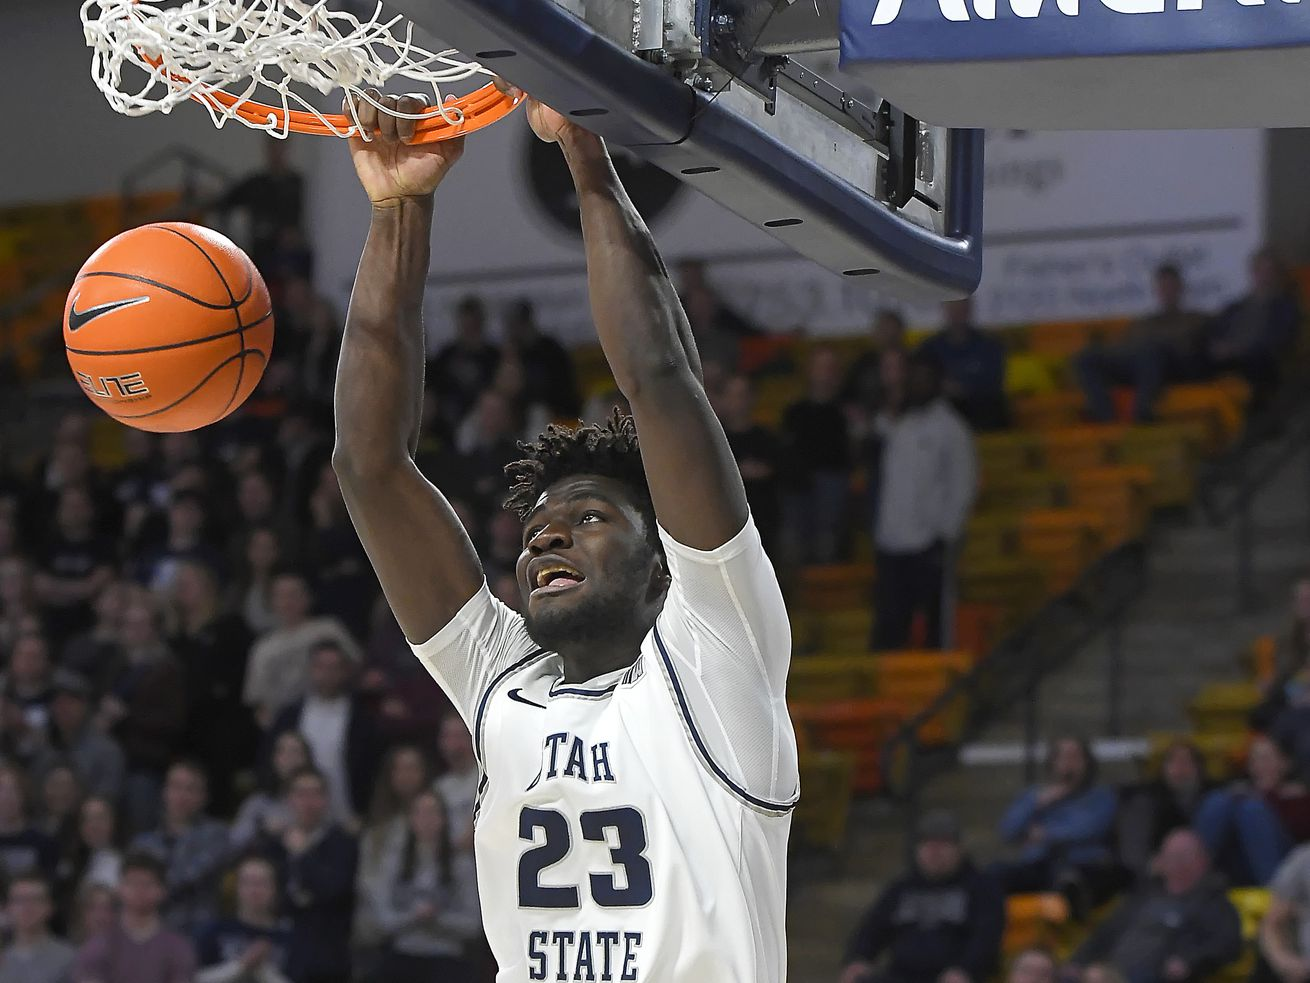 Utah State gets revenge, beats Air Force 72-47